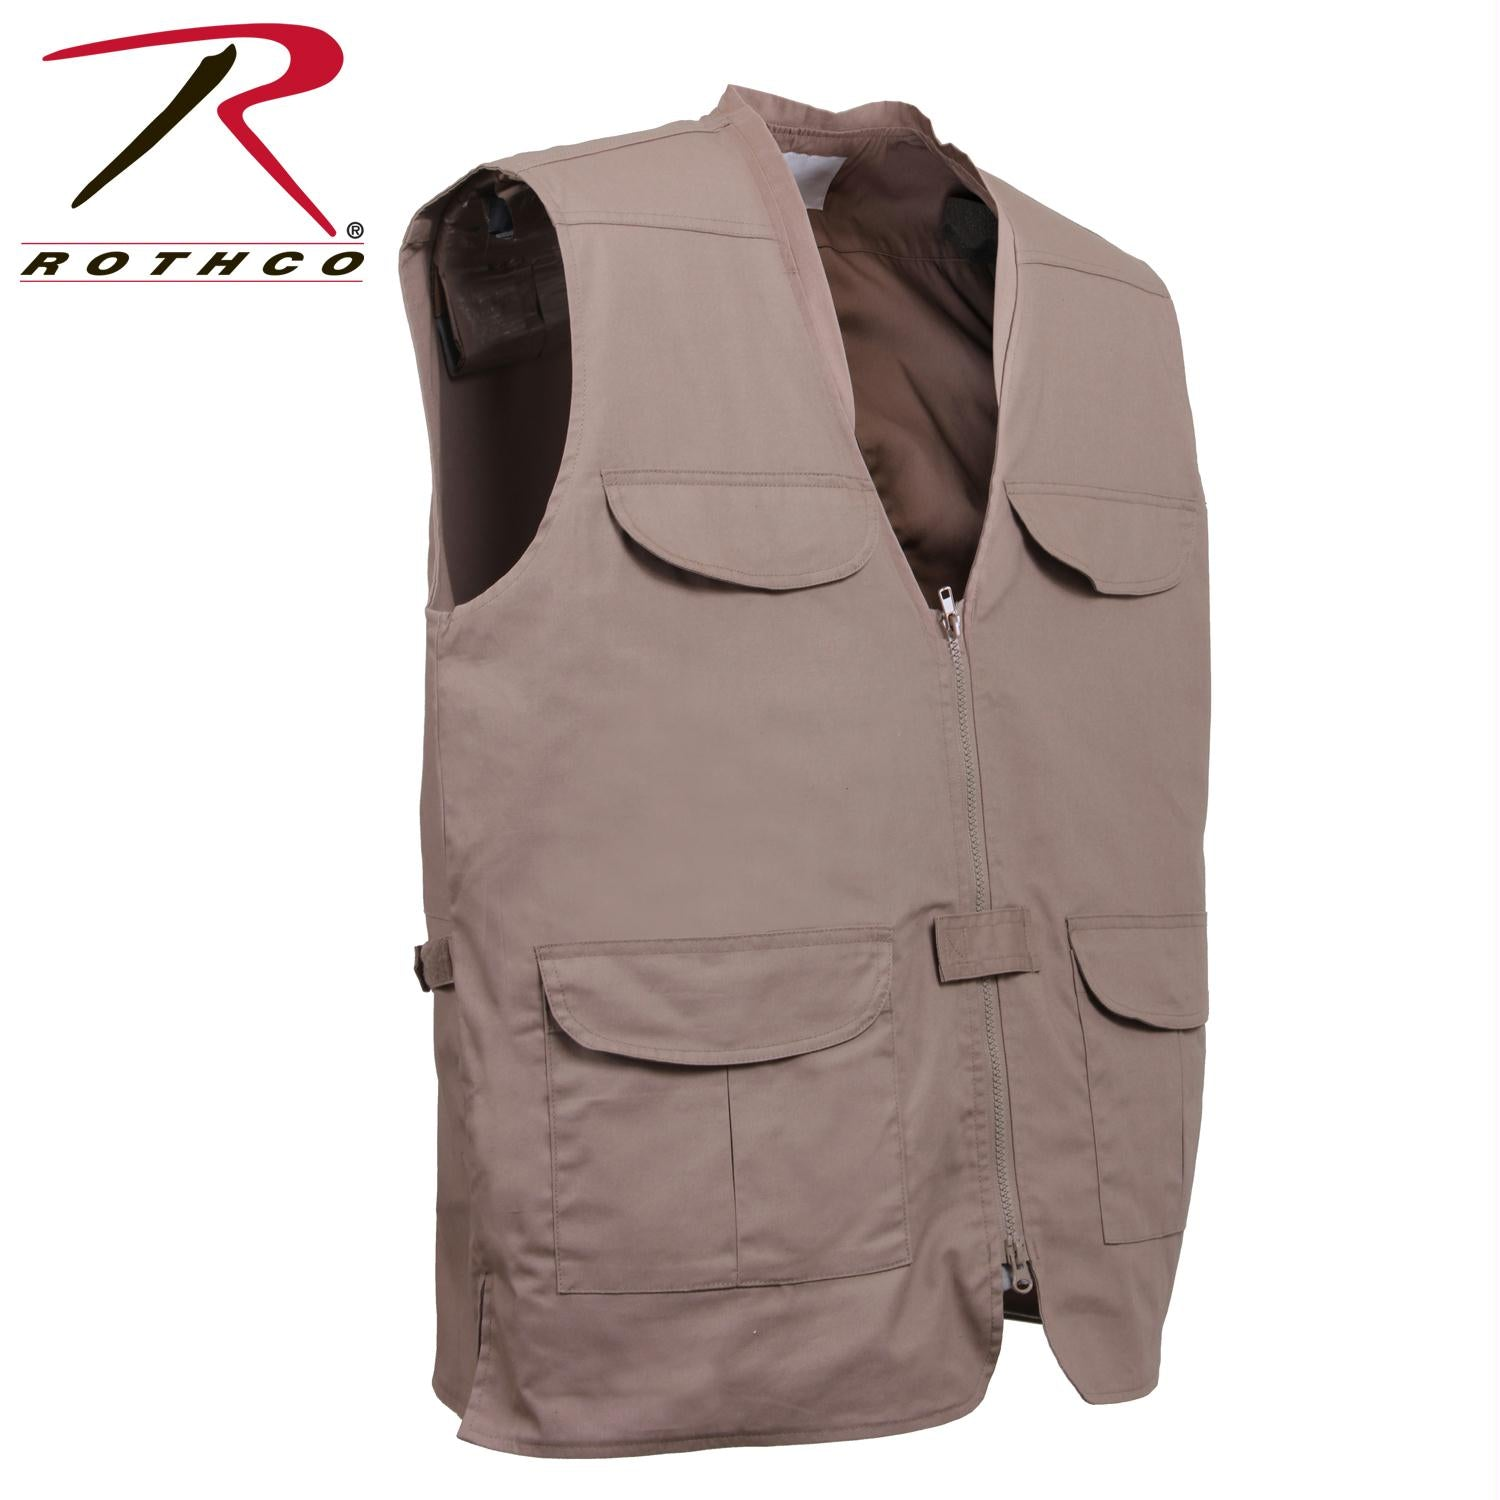 Rothco Lightweight Professional Concealed Carry Vest - Khaki / S